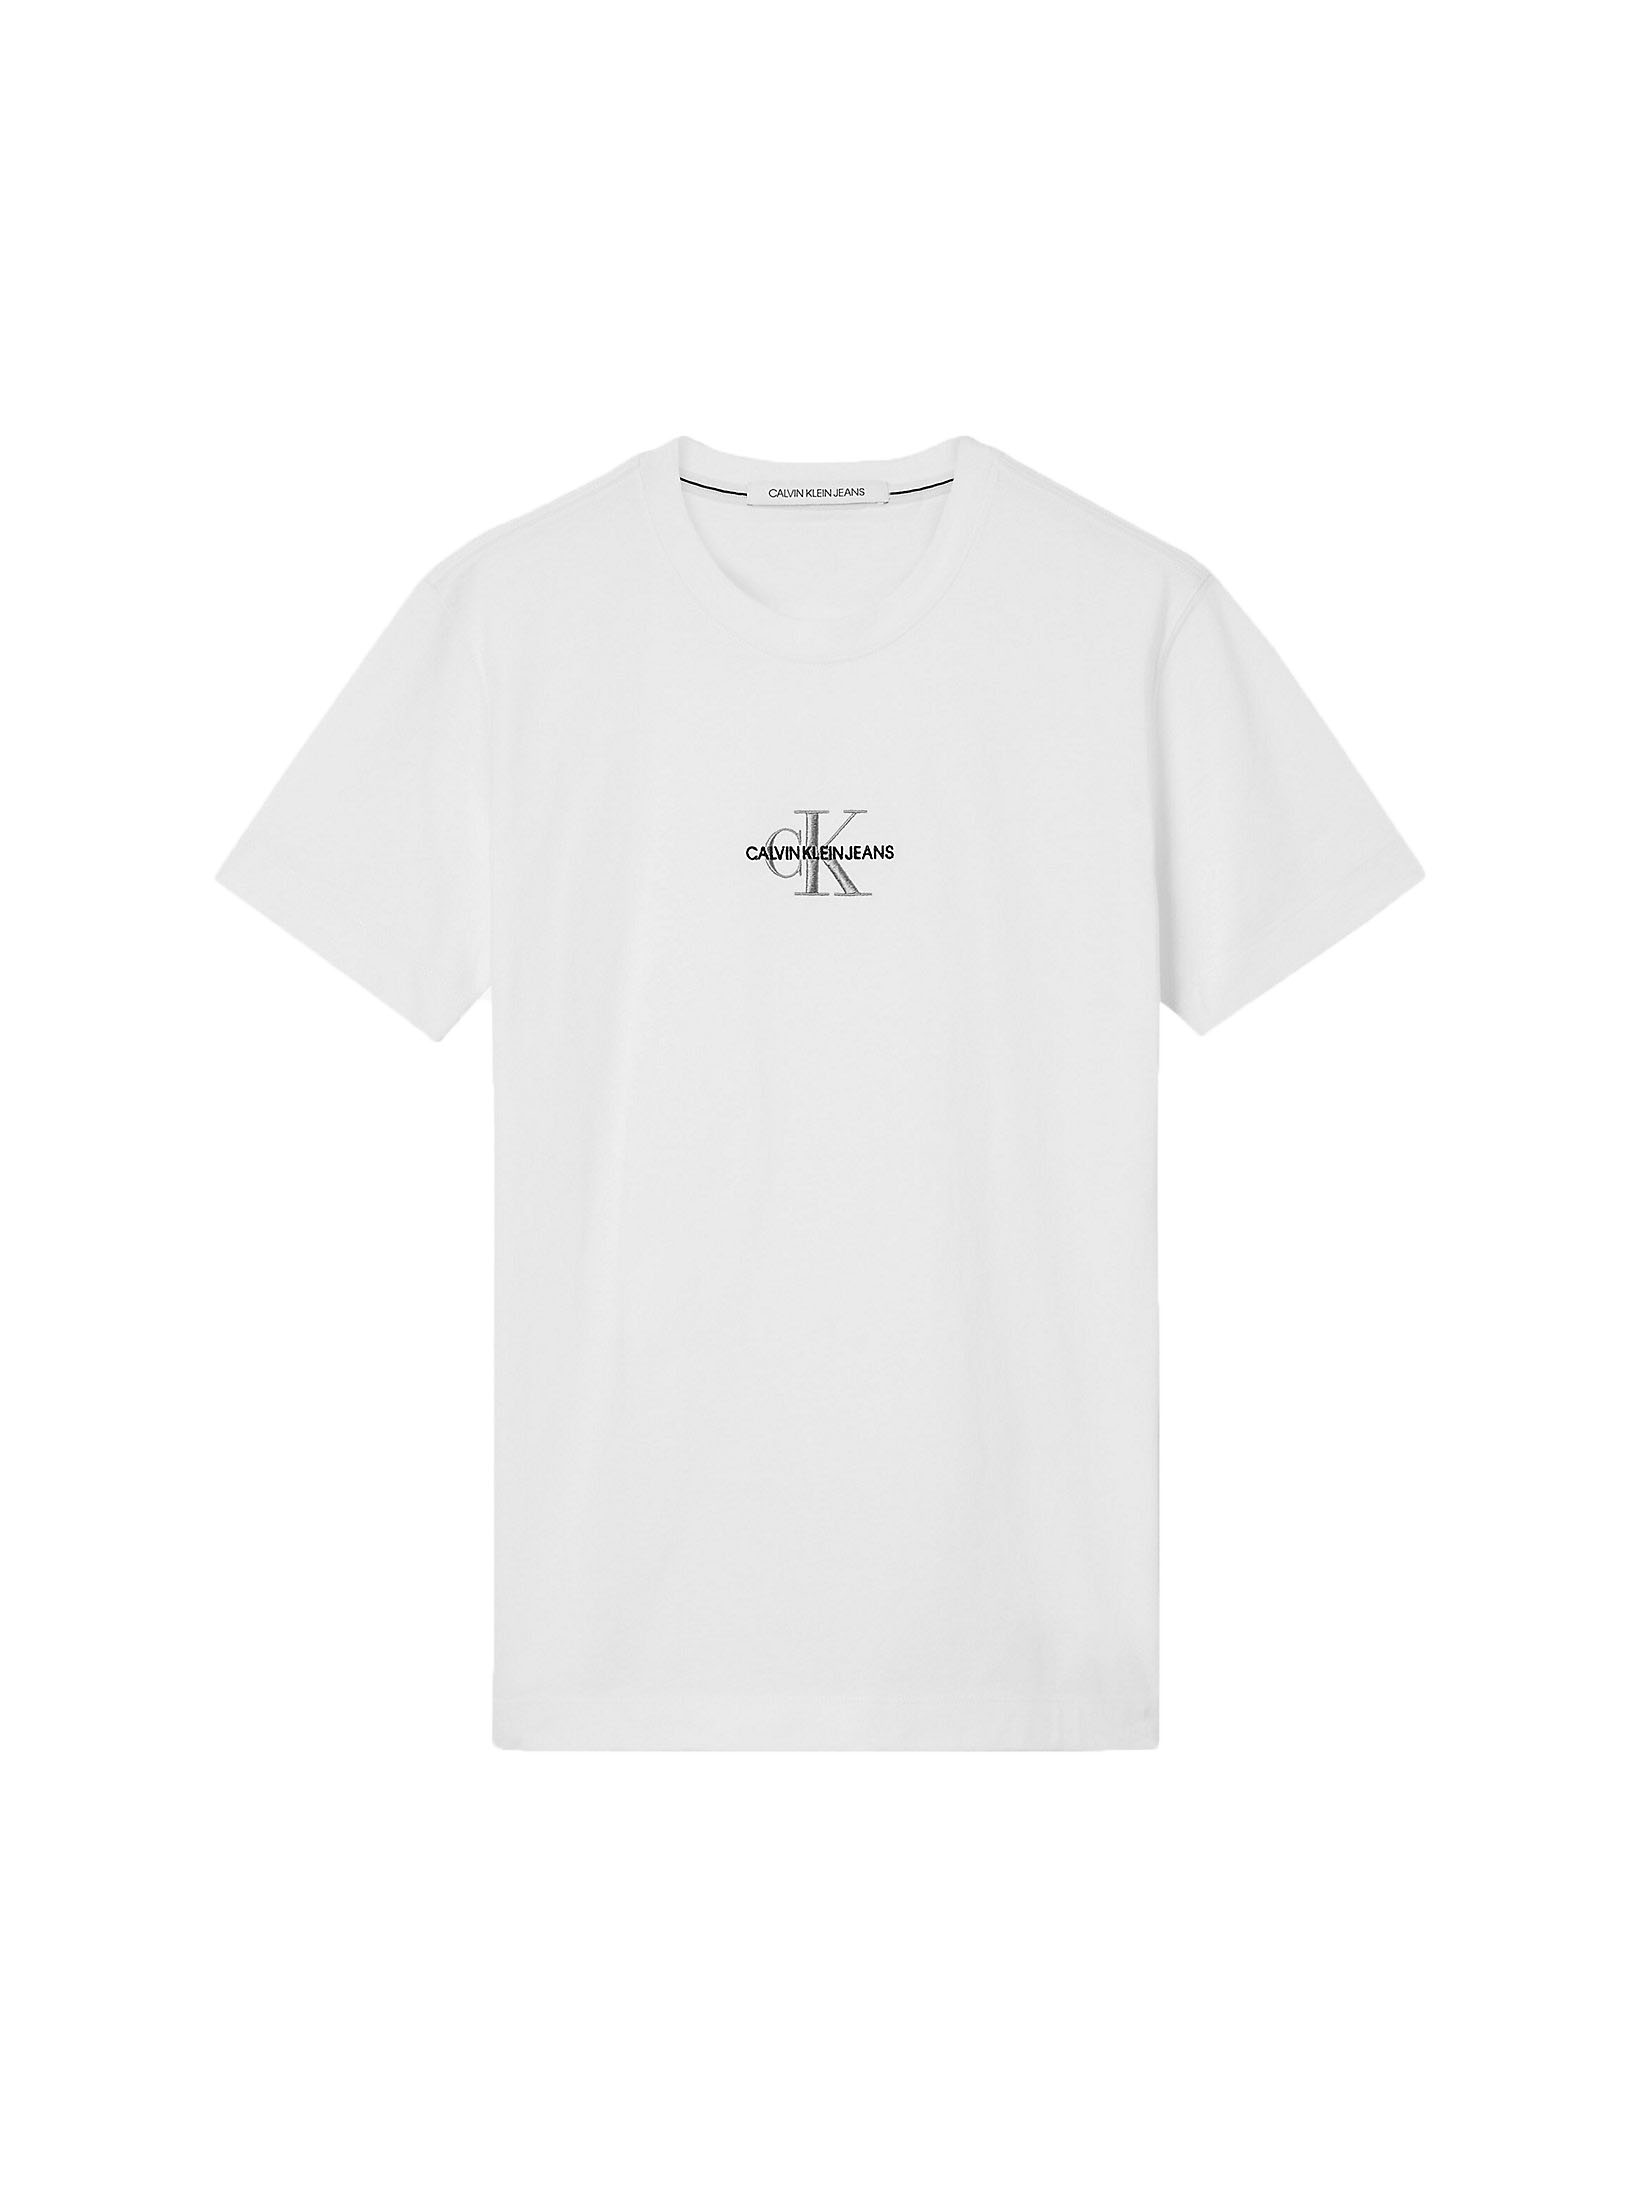 New Iconic Essential Tee